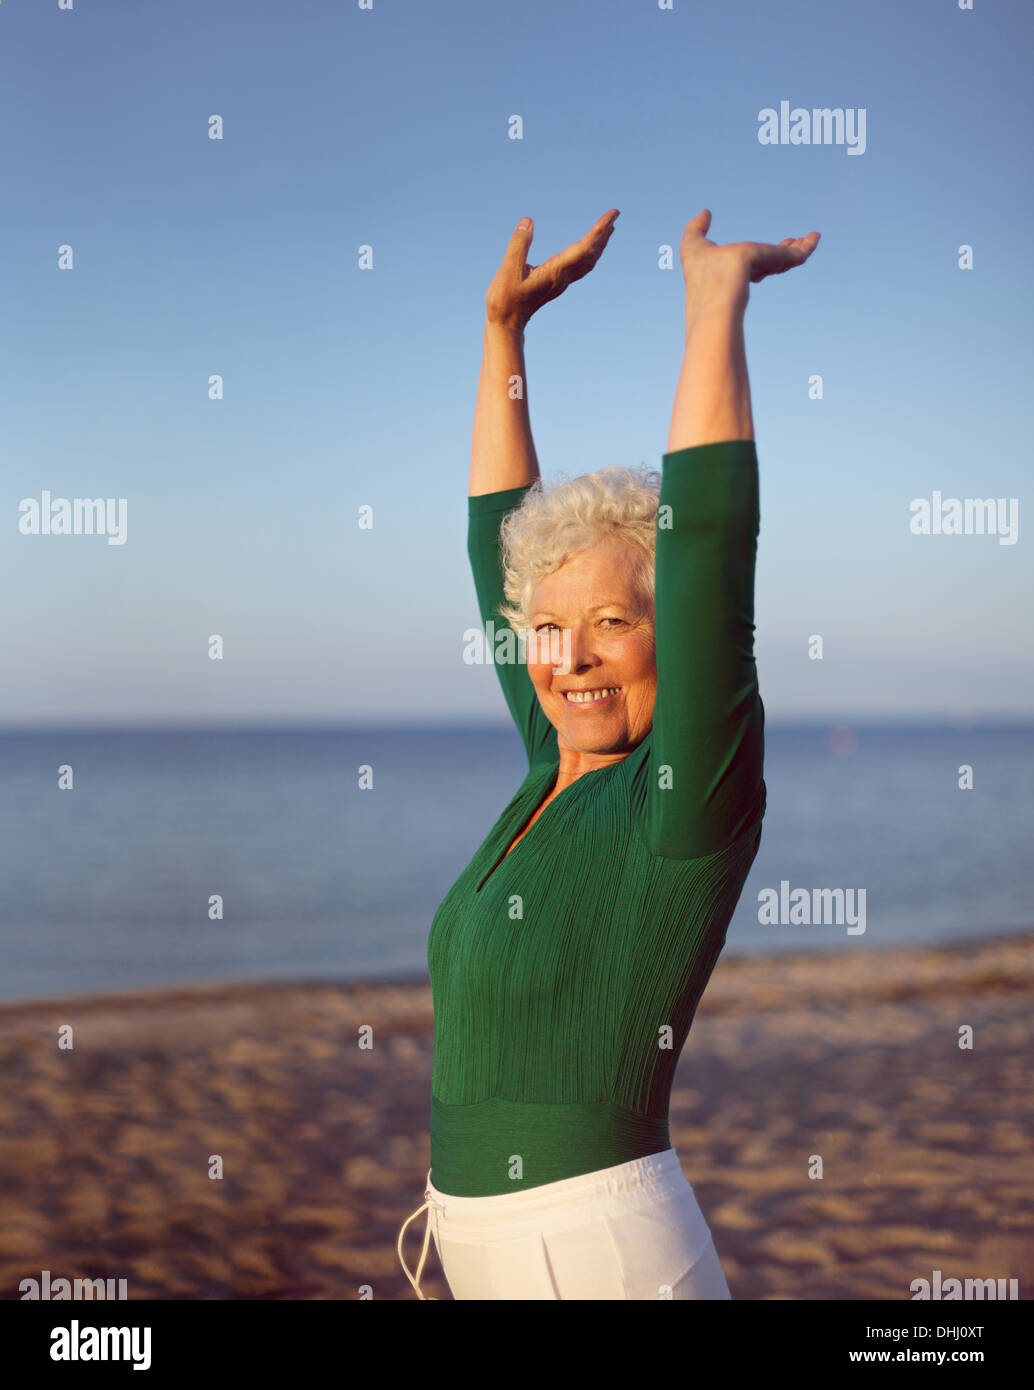 Portrait of healthy senior woman practicing yoga on beach with copyspace. Old caucasian woman exercising outdoors to stay fit. - Stock Image